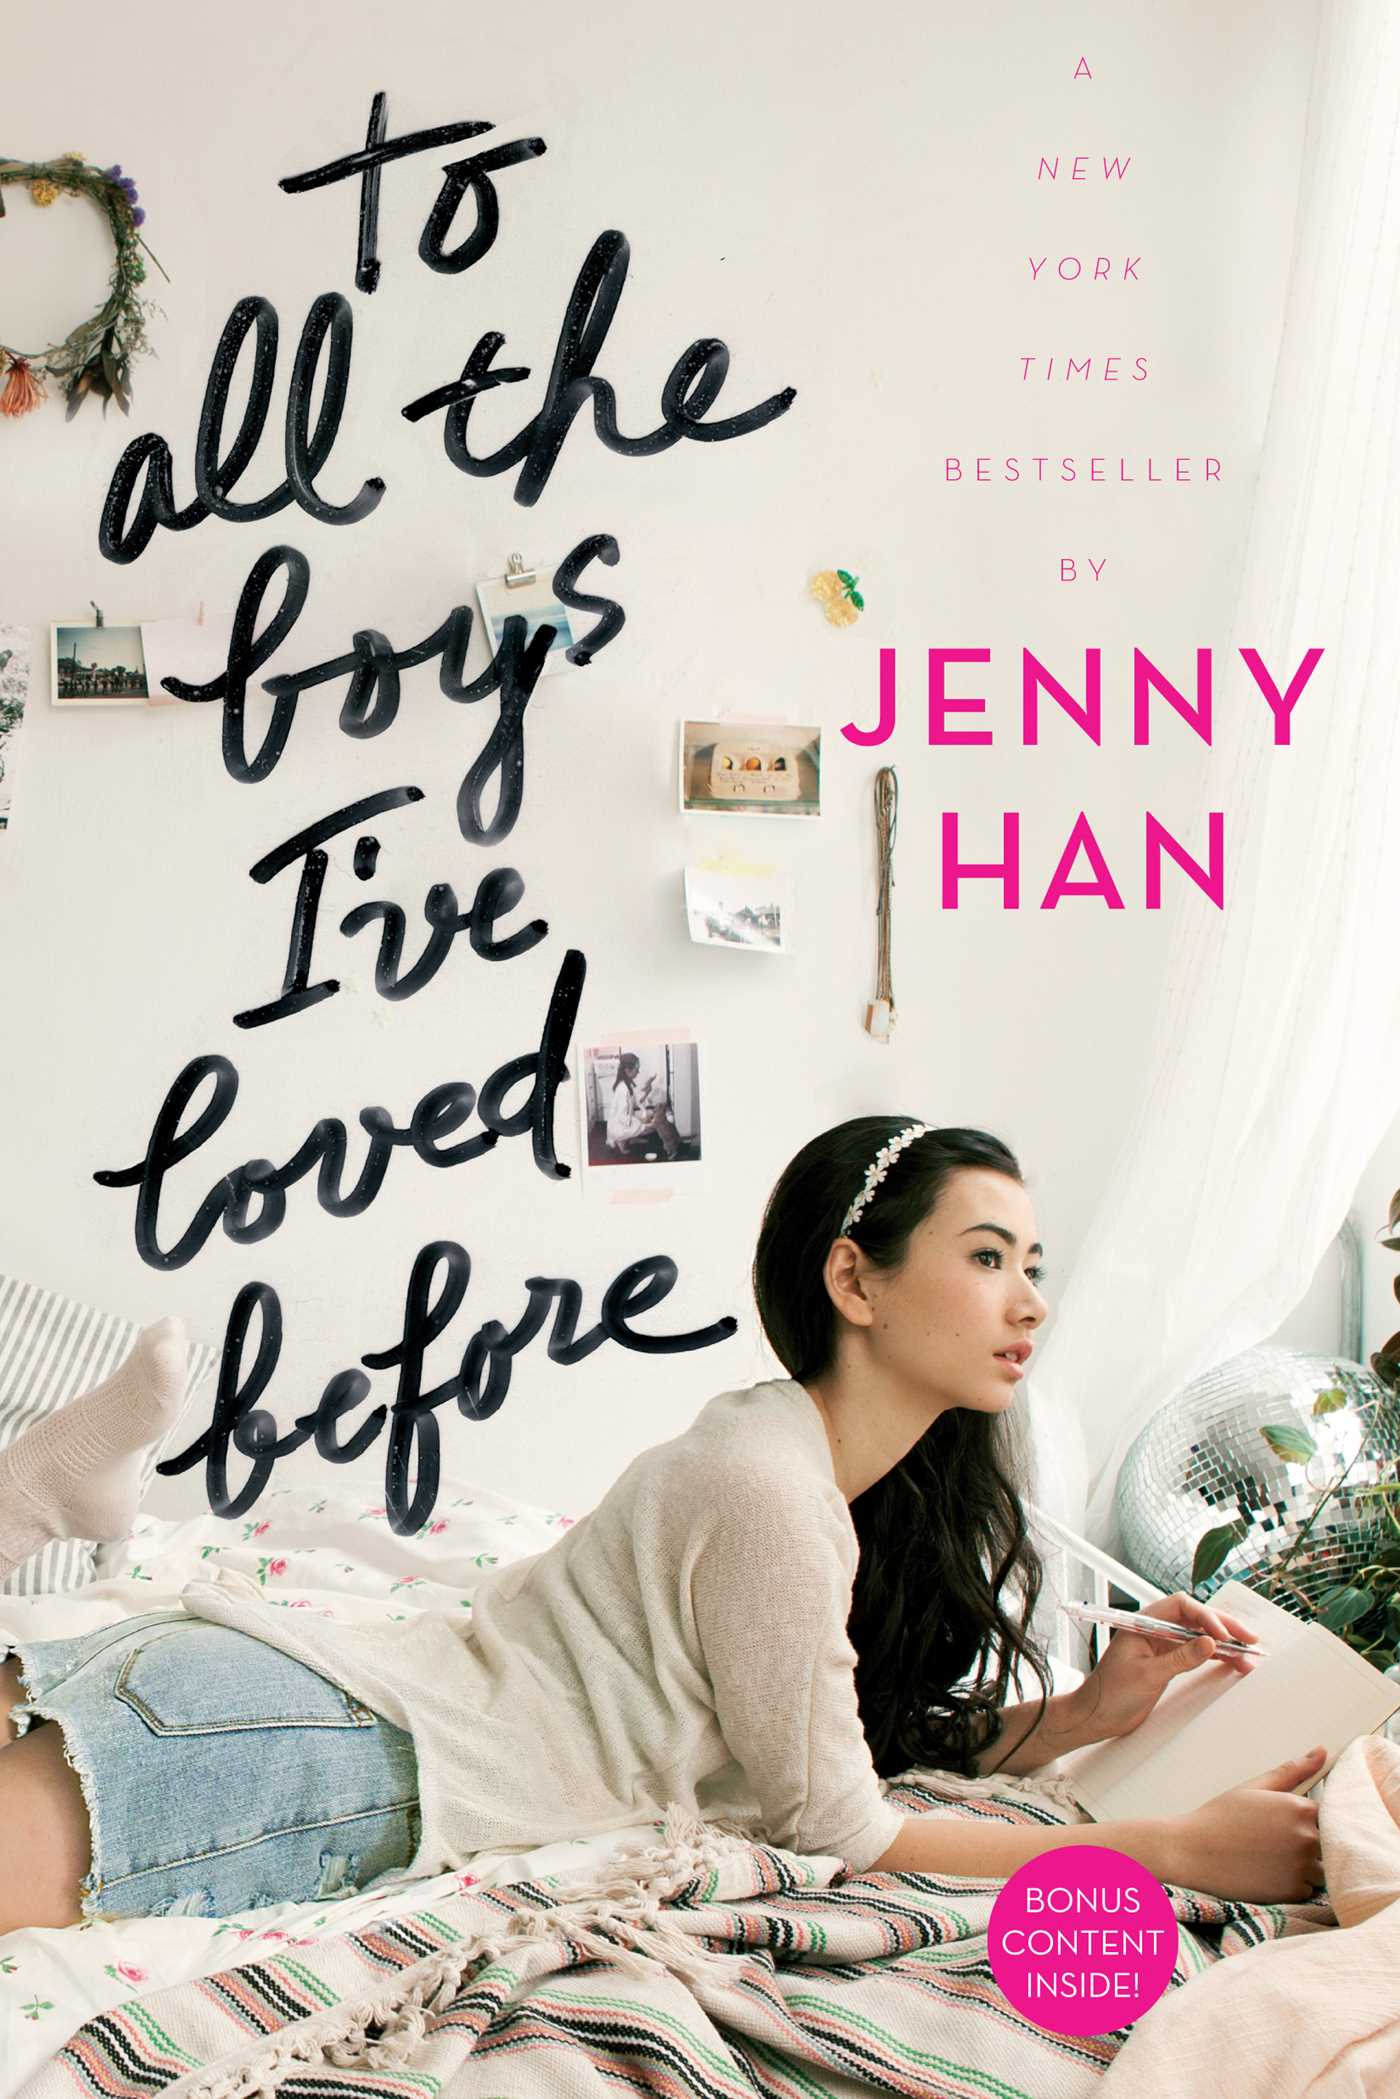 Lana Condor cast in 'To All The Boys I've Loved Before' Movie Adaptation